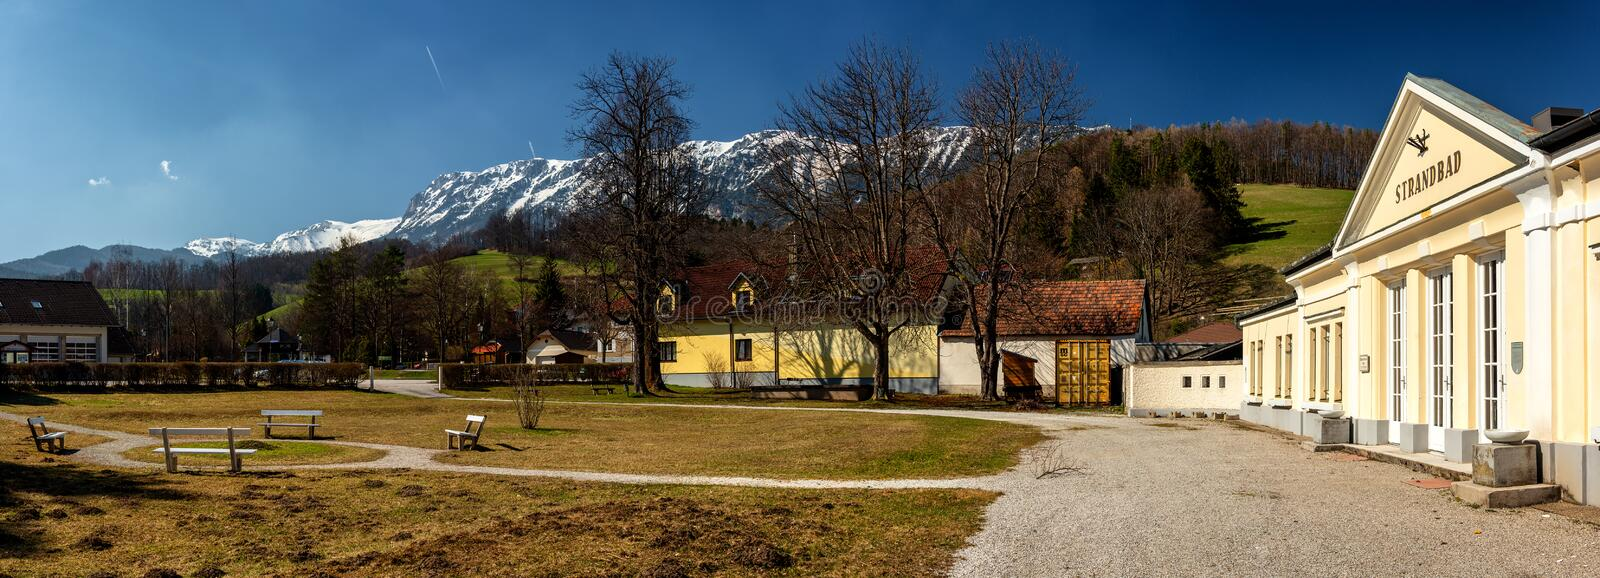 Health Resort, Spa in Edlach, Rax, Austria. Panoramic view of the famous Strandbad engl. Health Resort, Spa in Edlach, located royalty free stock photos